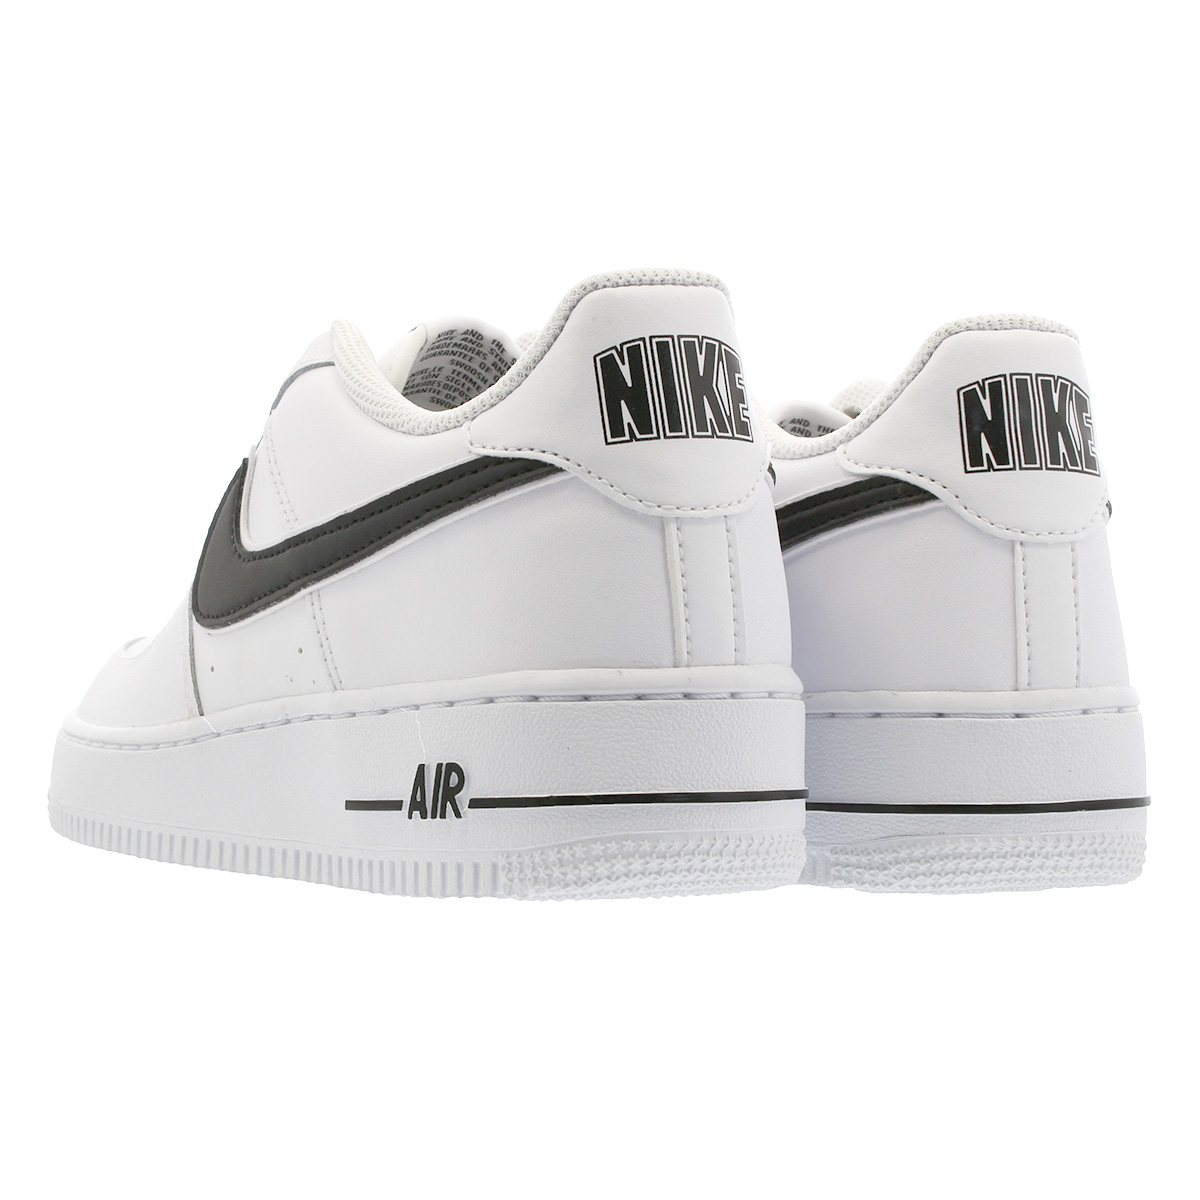 NIKE AIR FORCE 1 3 GS Nike air force 1 3 GS WHITEBLACK av6252 100